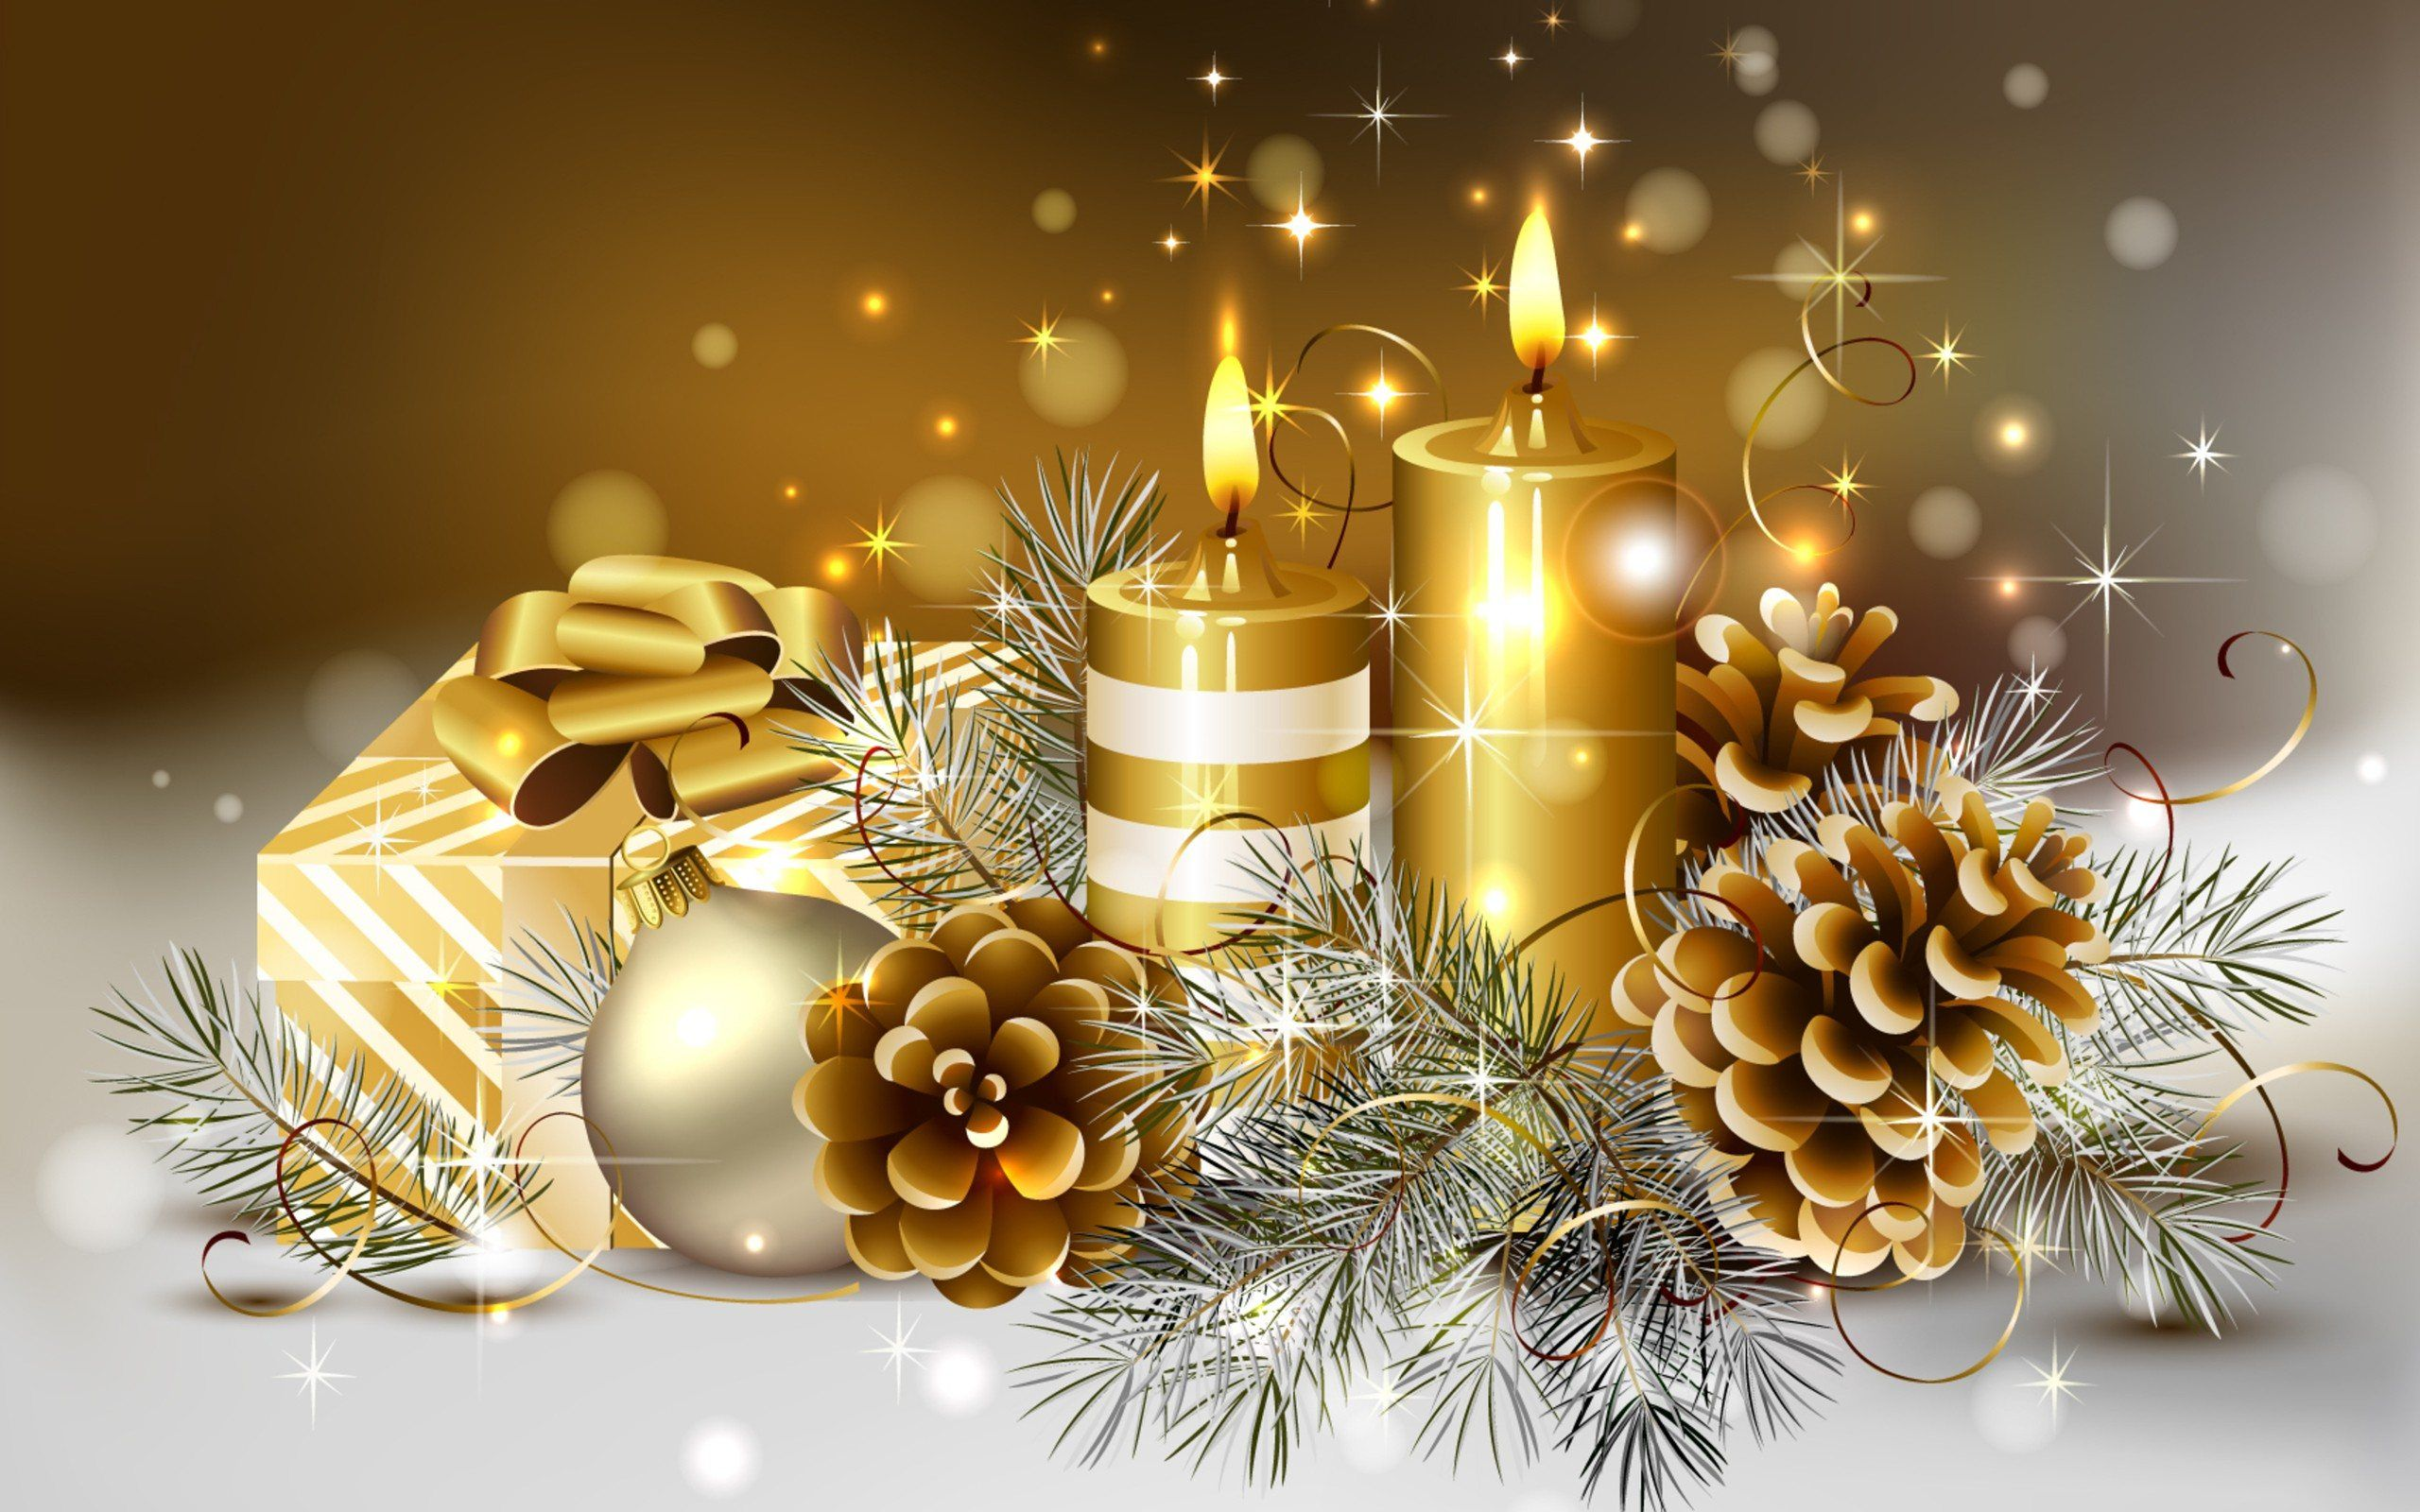 Here We Share Happy Merry Christmas Day 2017 HD Wallpaper Images Which Will Tell You About How To Celebra